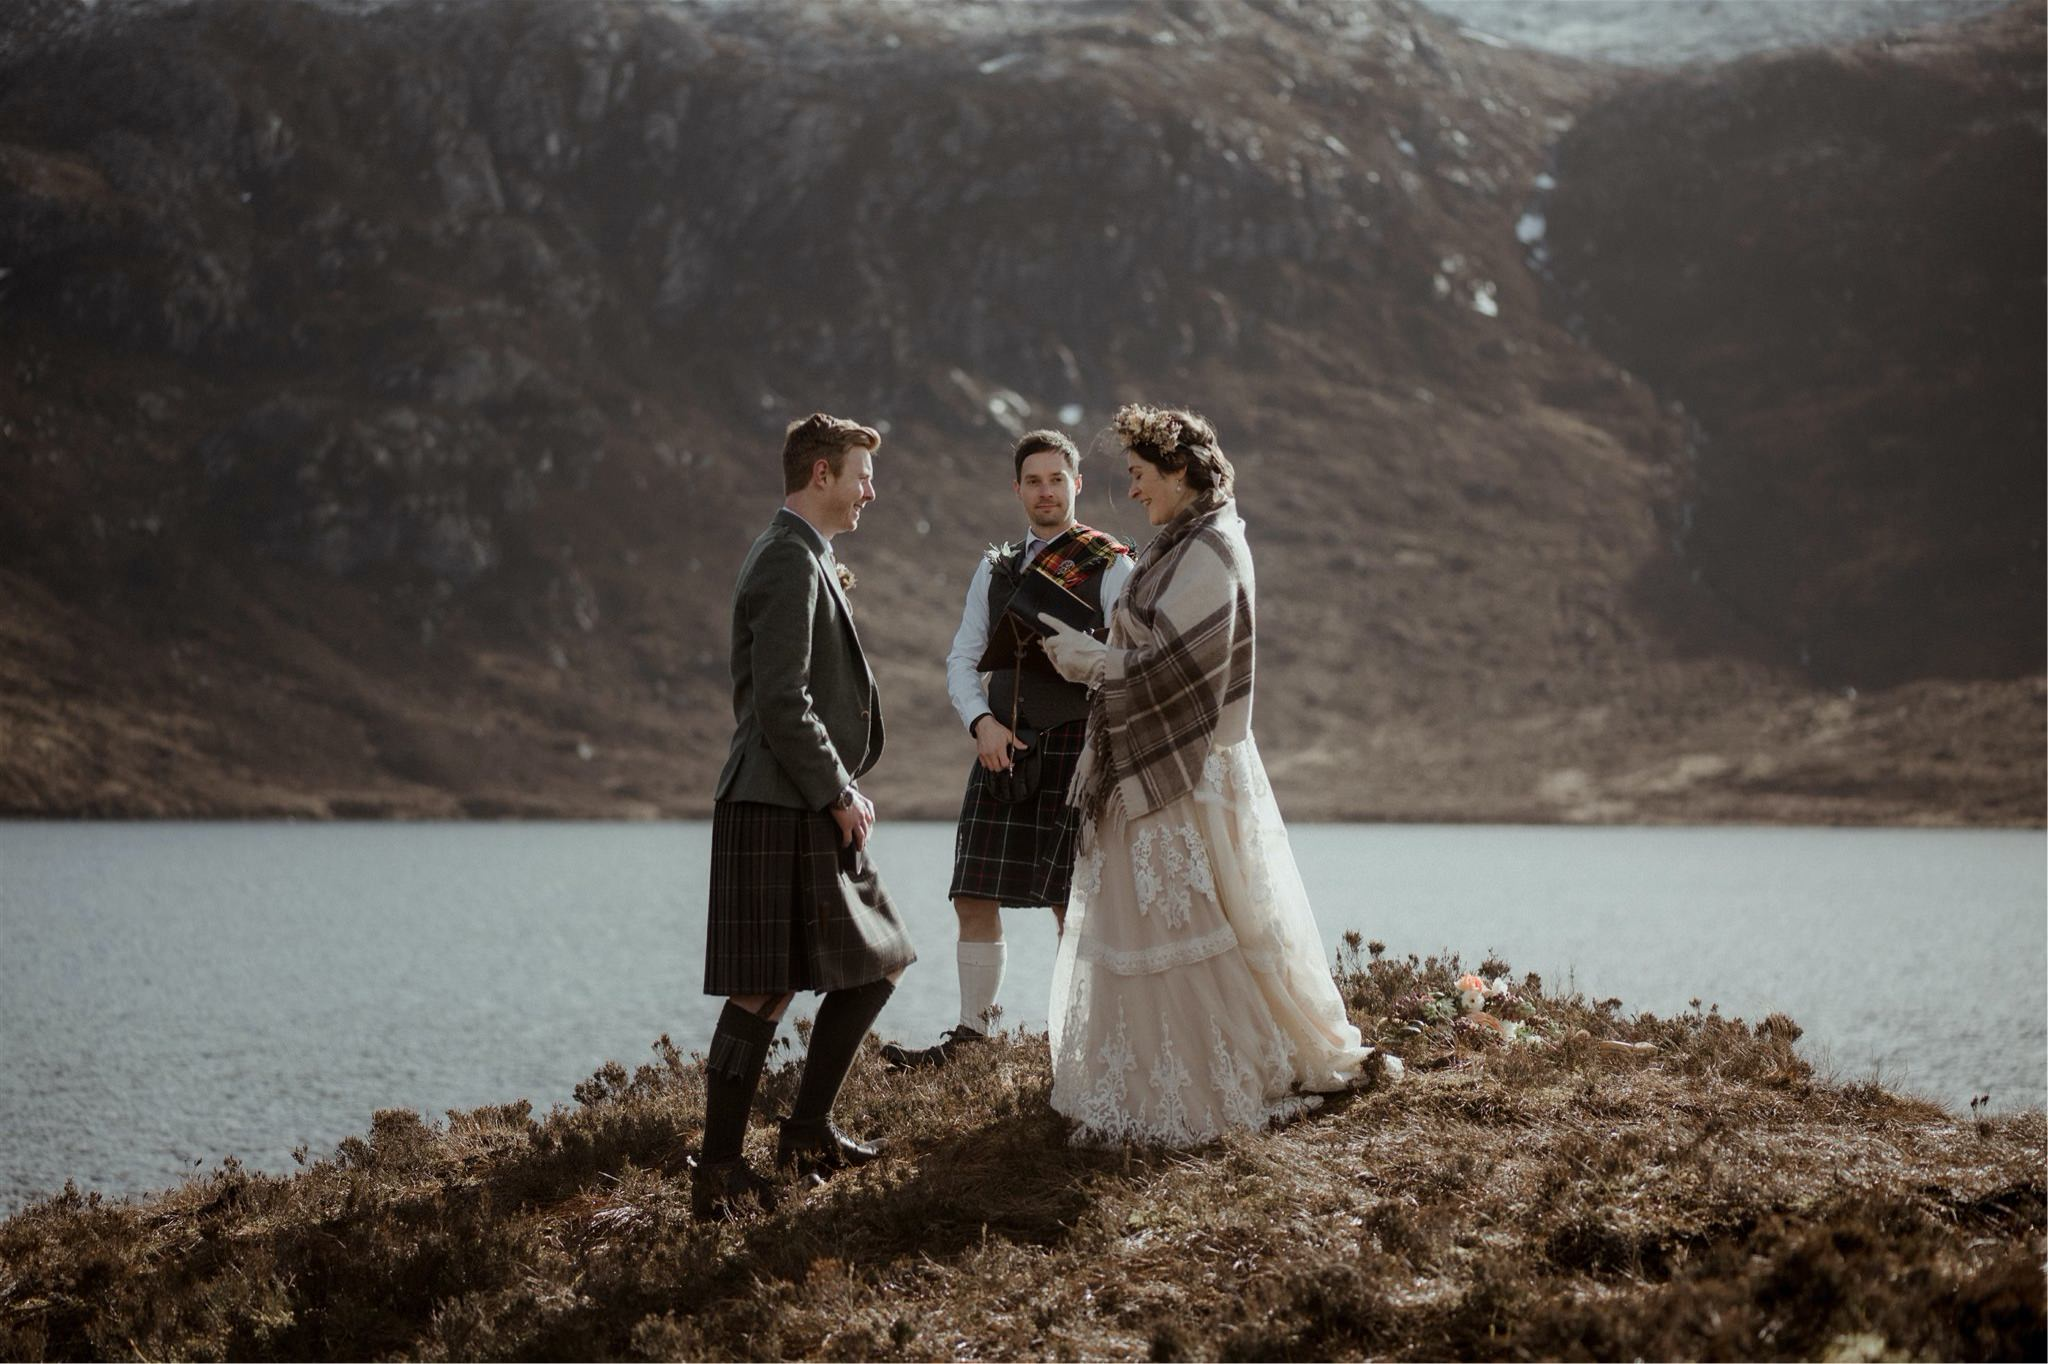 Bride reading vows to her groom during a Scottish elopement wedding in Assynt